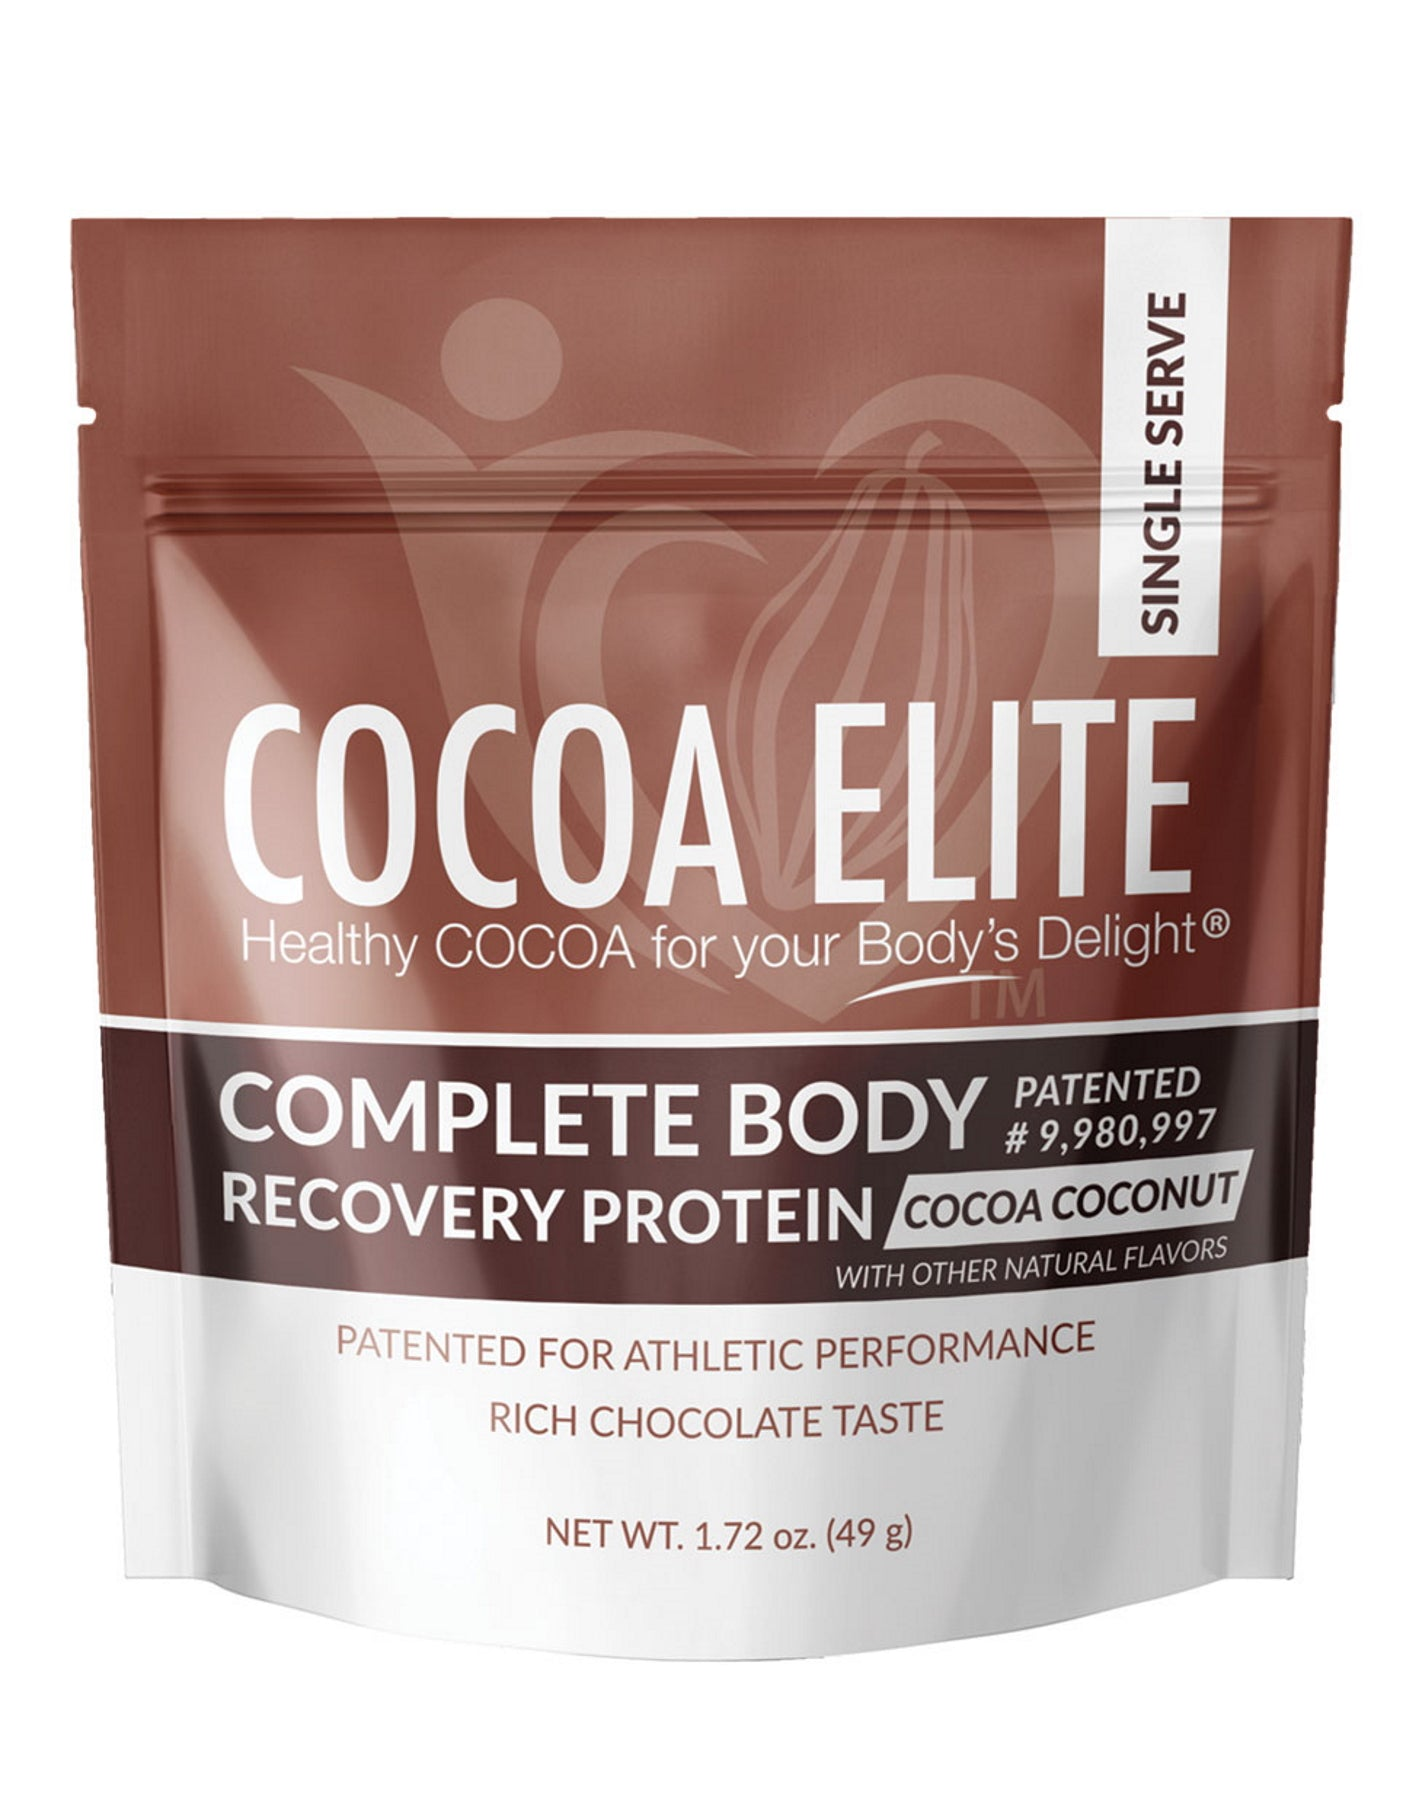 Complete Body Recovery Protein – Coconut Flavor - Single Serve